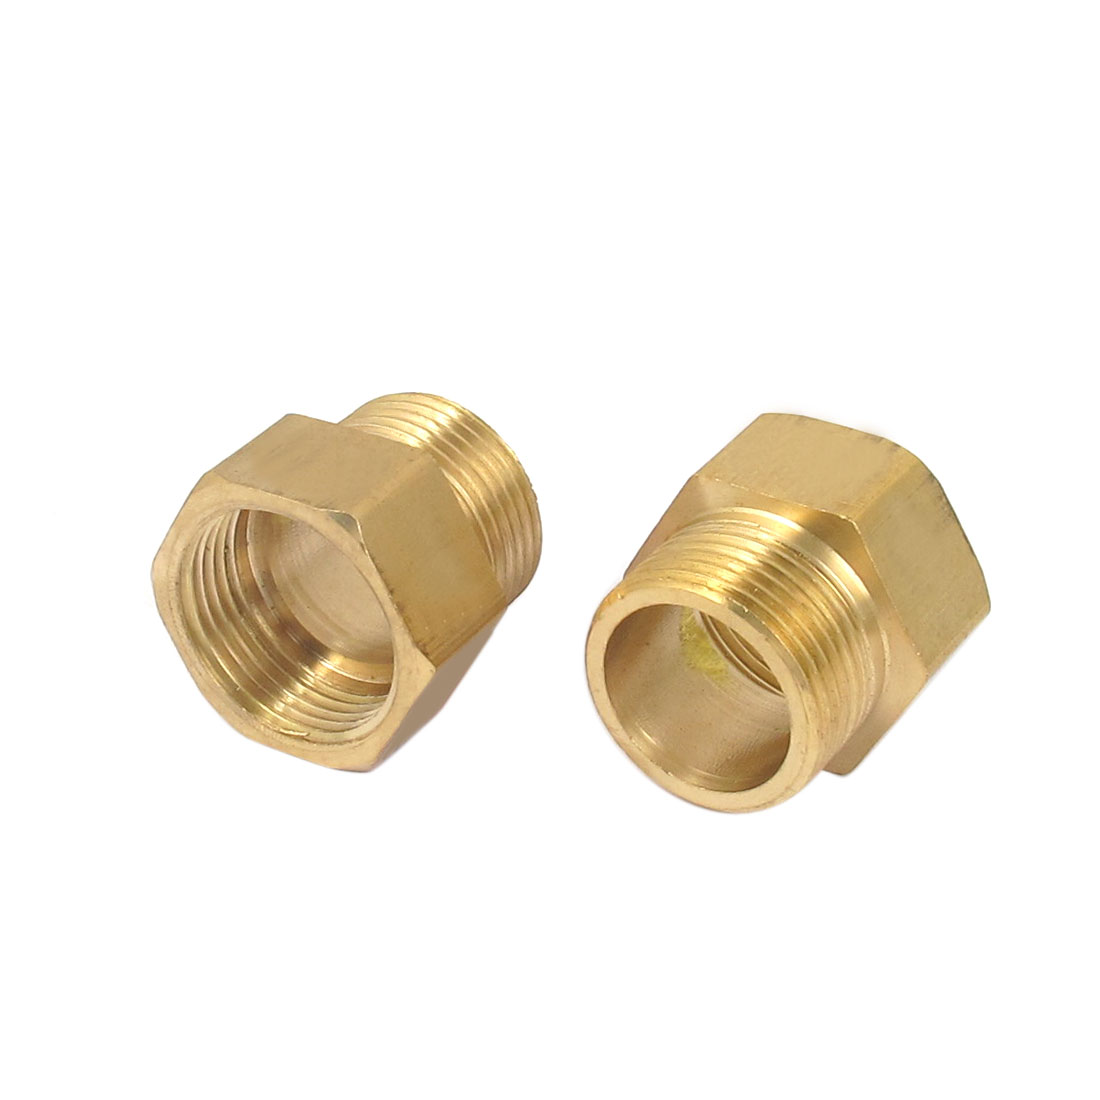 2pcs 3/4BSP to 3/4BSP M/F Threaded Hex Head Brass Air Pipe Fittings Reducer Bushing Adapter Gold Tone